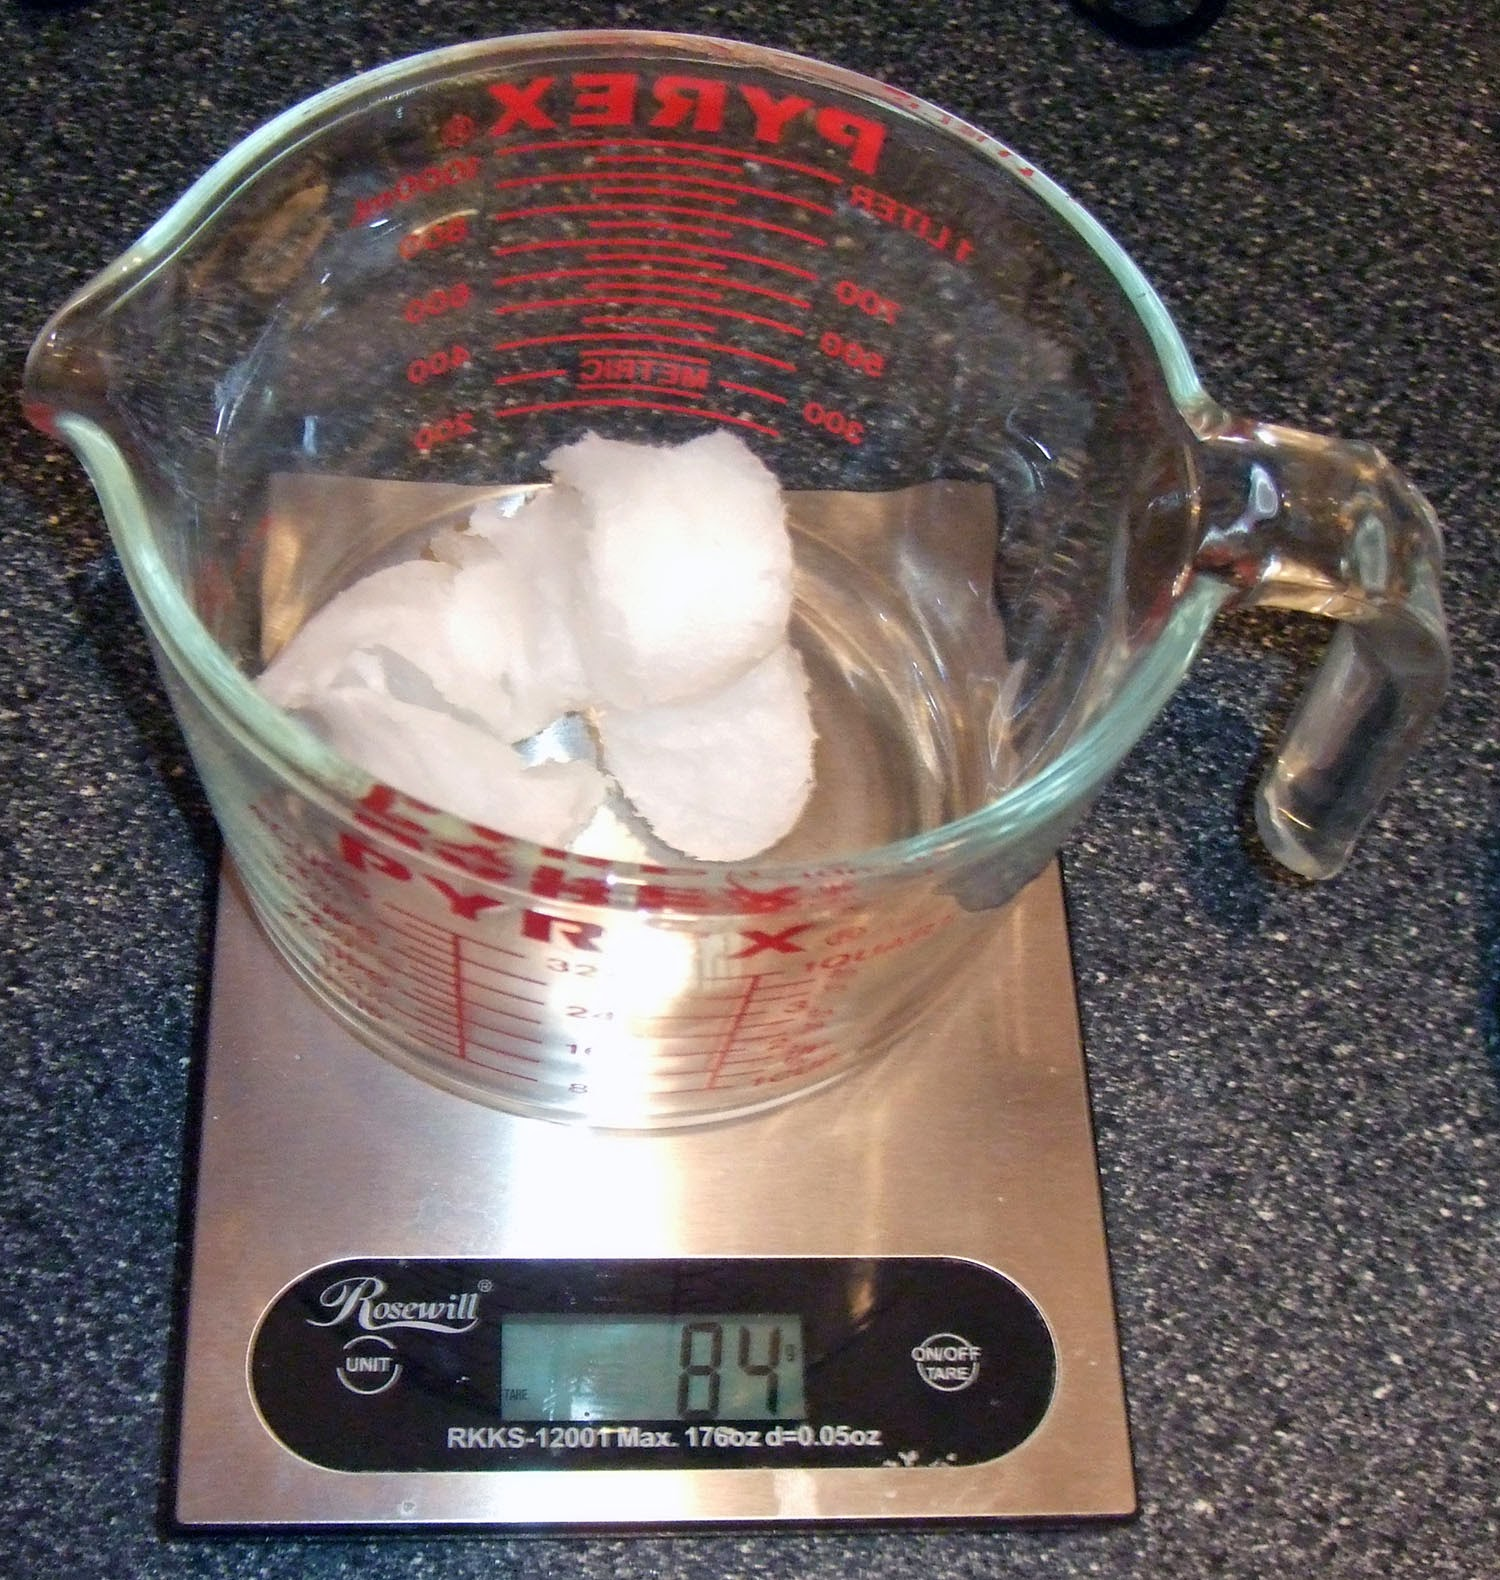 Coconut oil in measuring cup.